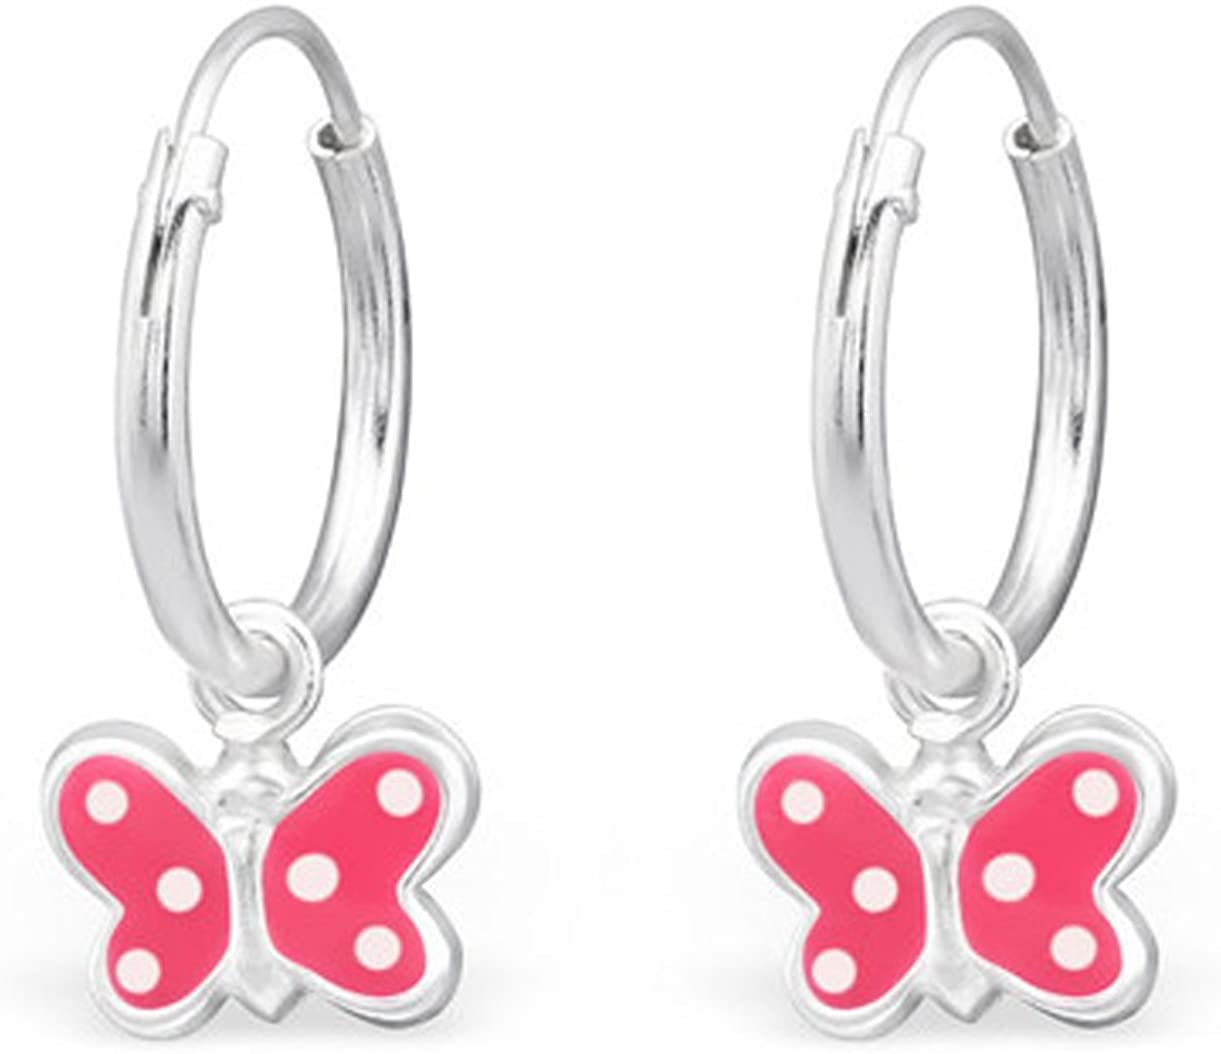 Small Pink White Dots Butterfly Hoop Earrings Colorful Girls Stering Silver 925 Nickle Free E28634